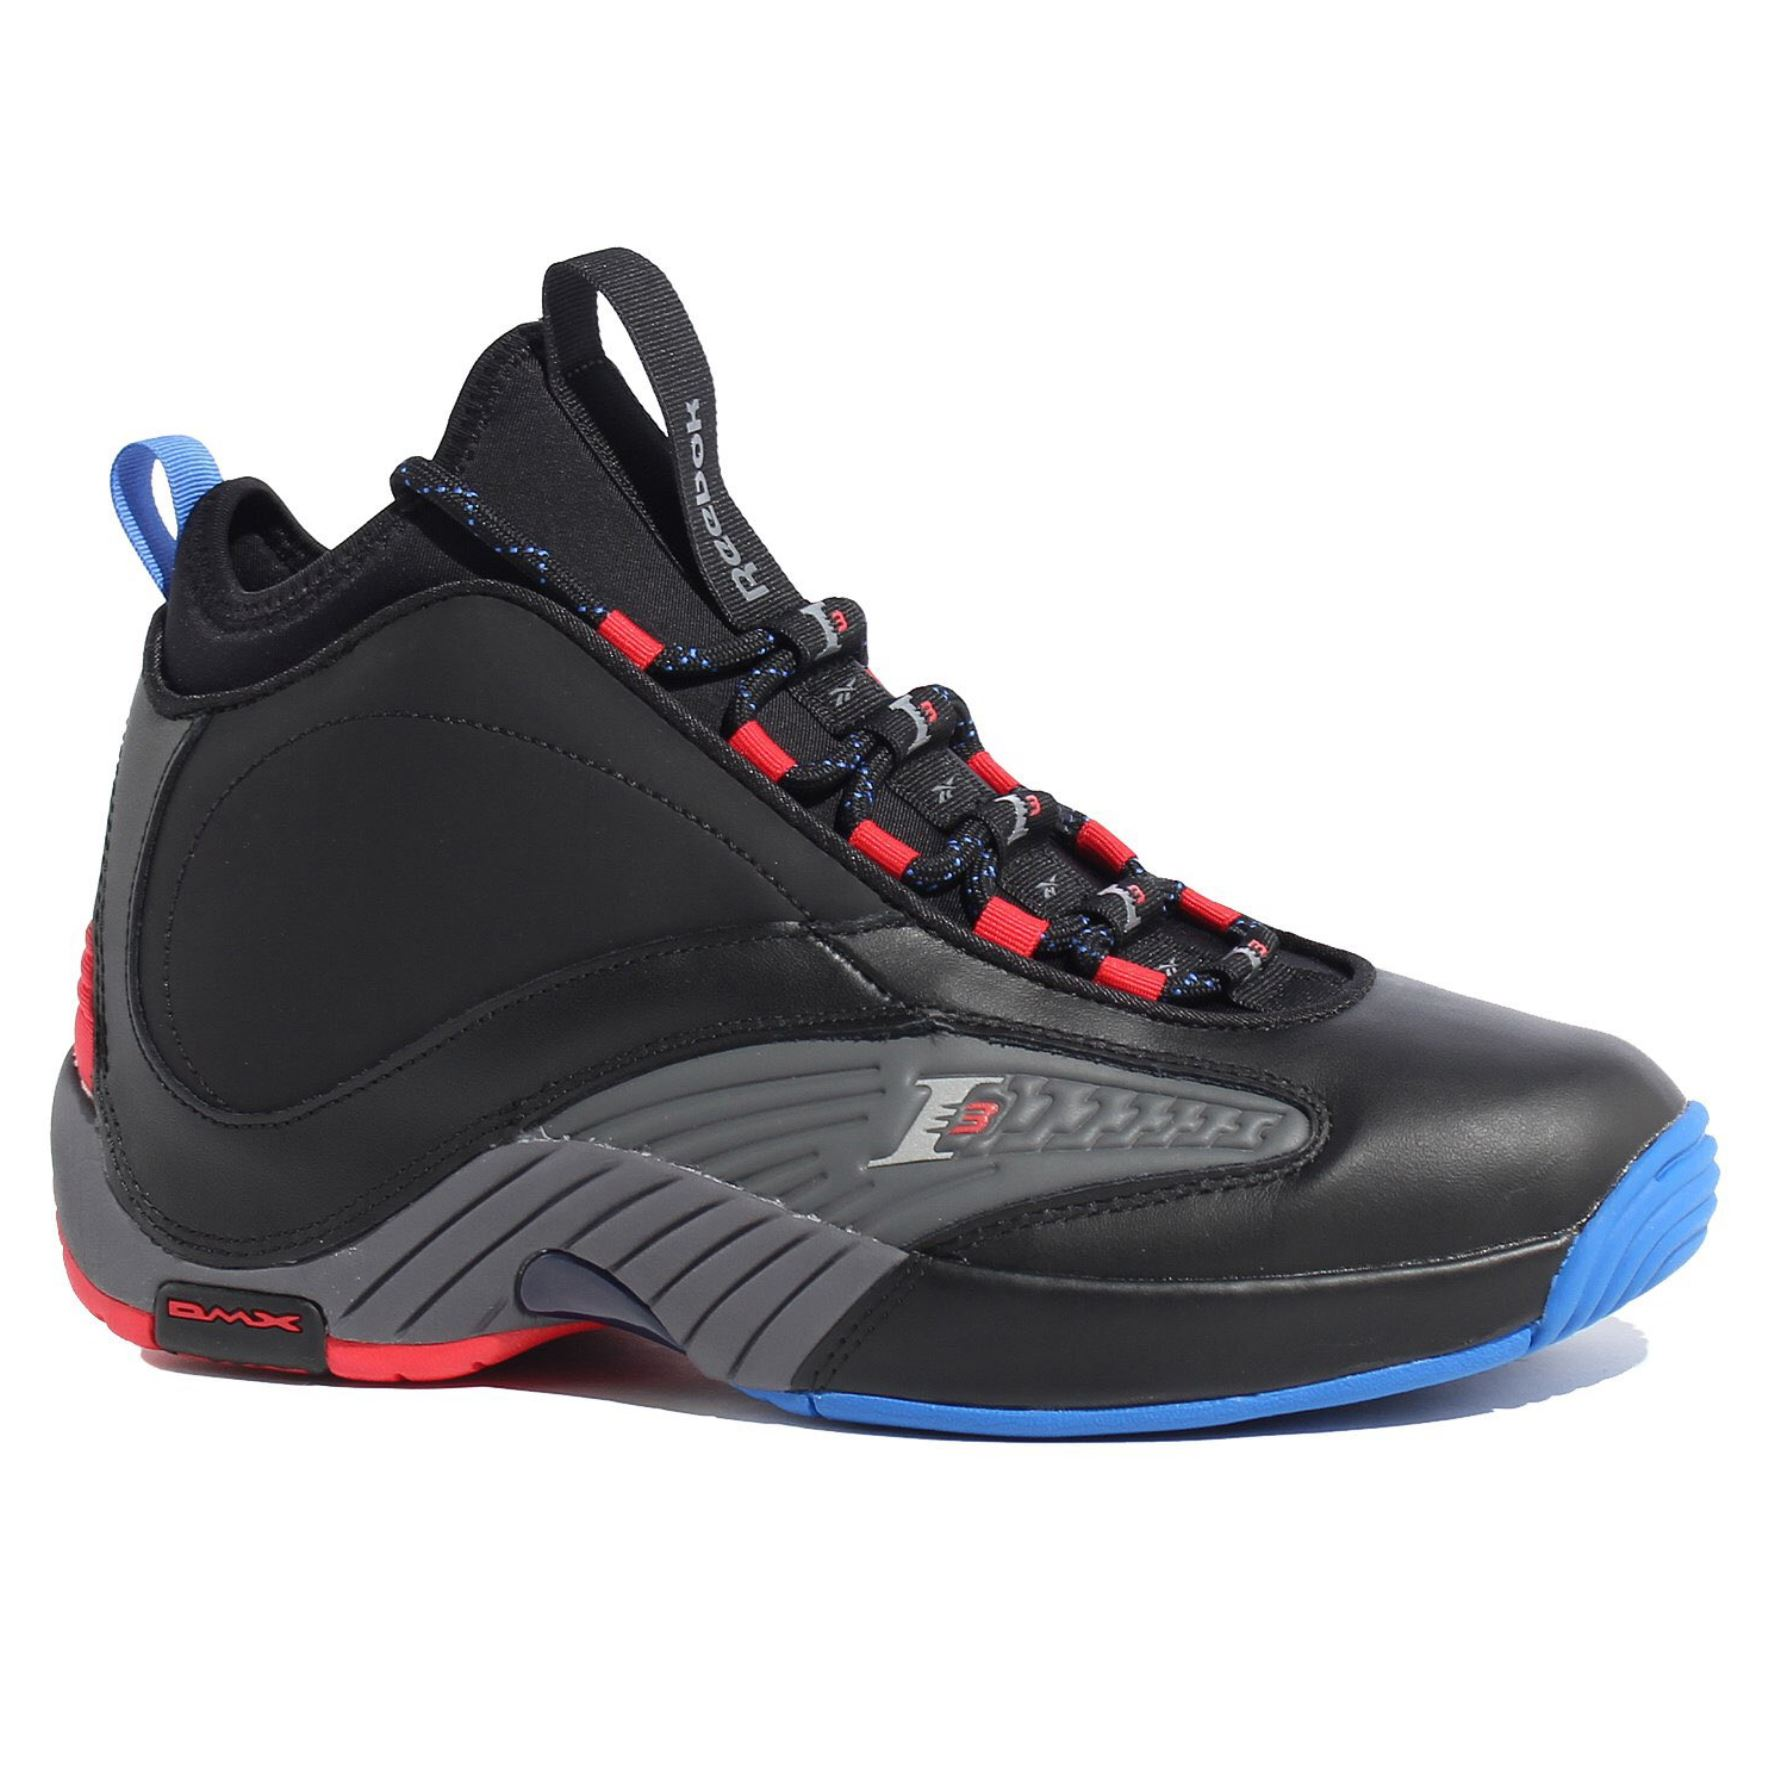 aeda74d932 Exclusive: The Reebok Answer 4.5 is Inspired by A.I.'s Iconic Sleeve ...